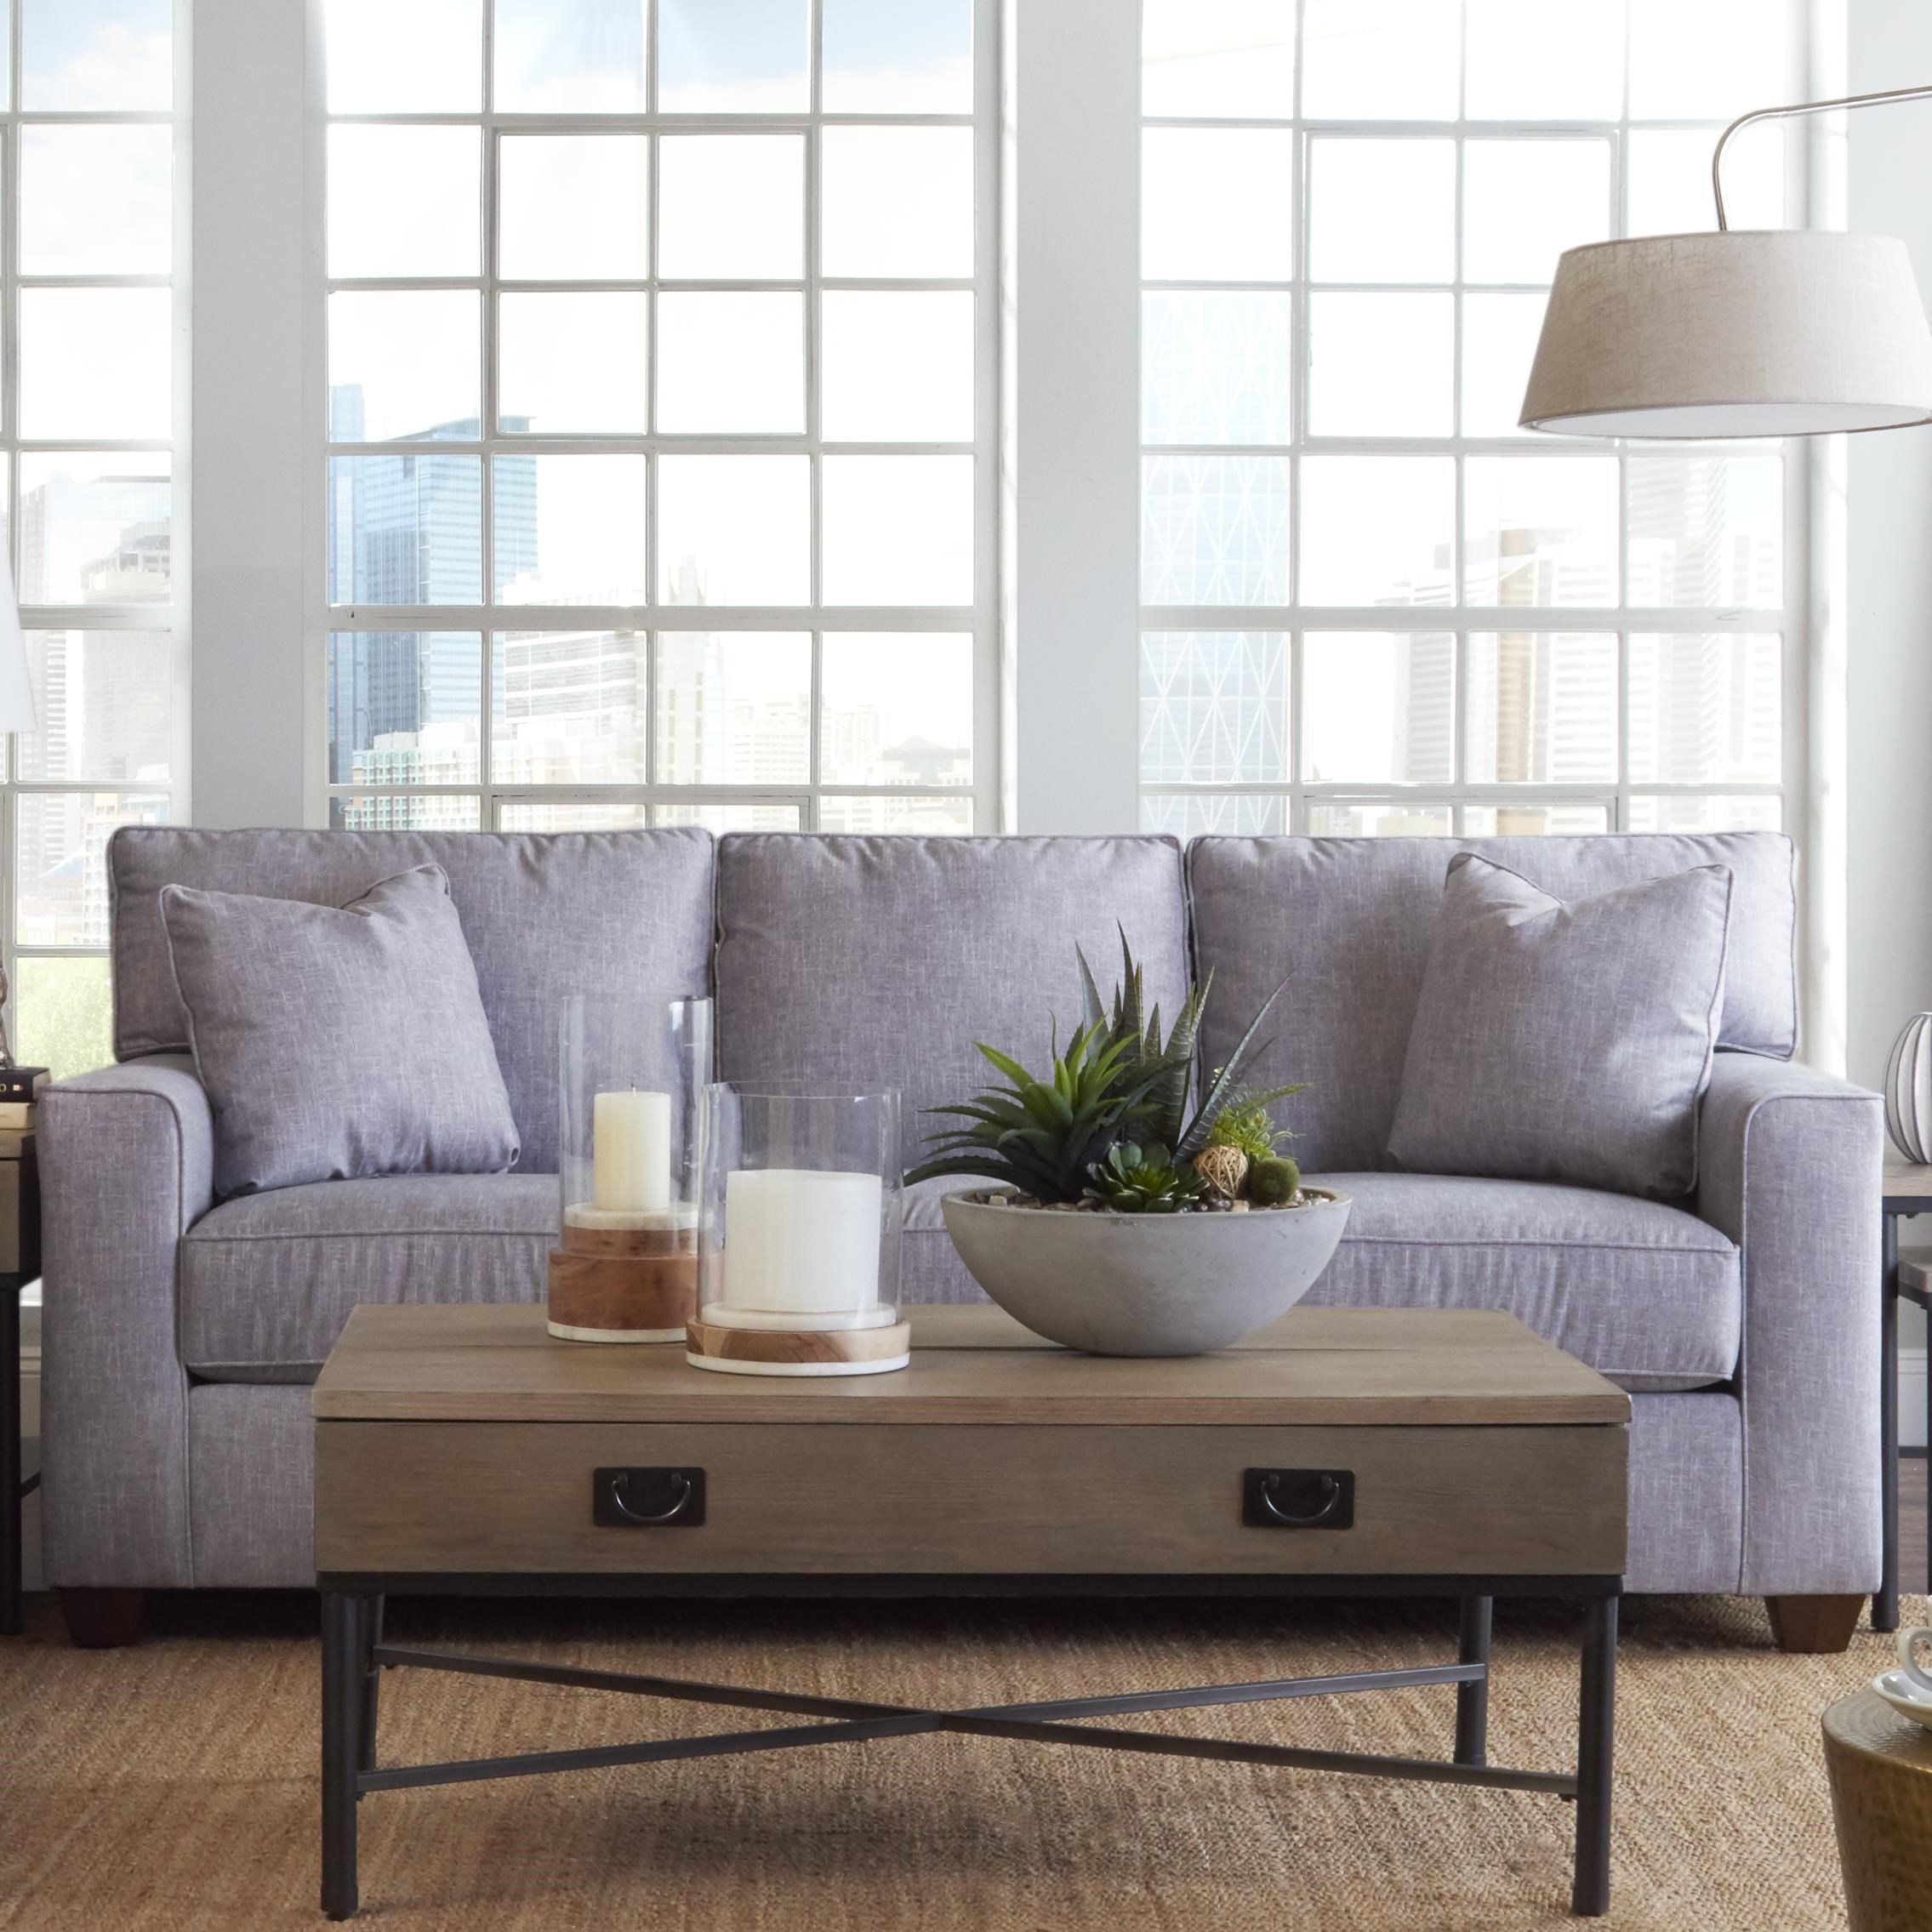 Nolan Queen Enso Memory Foam Sleeper Sofa by Klaussner at